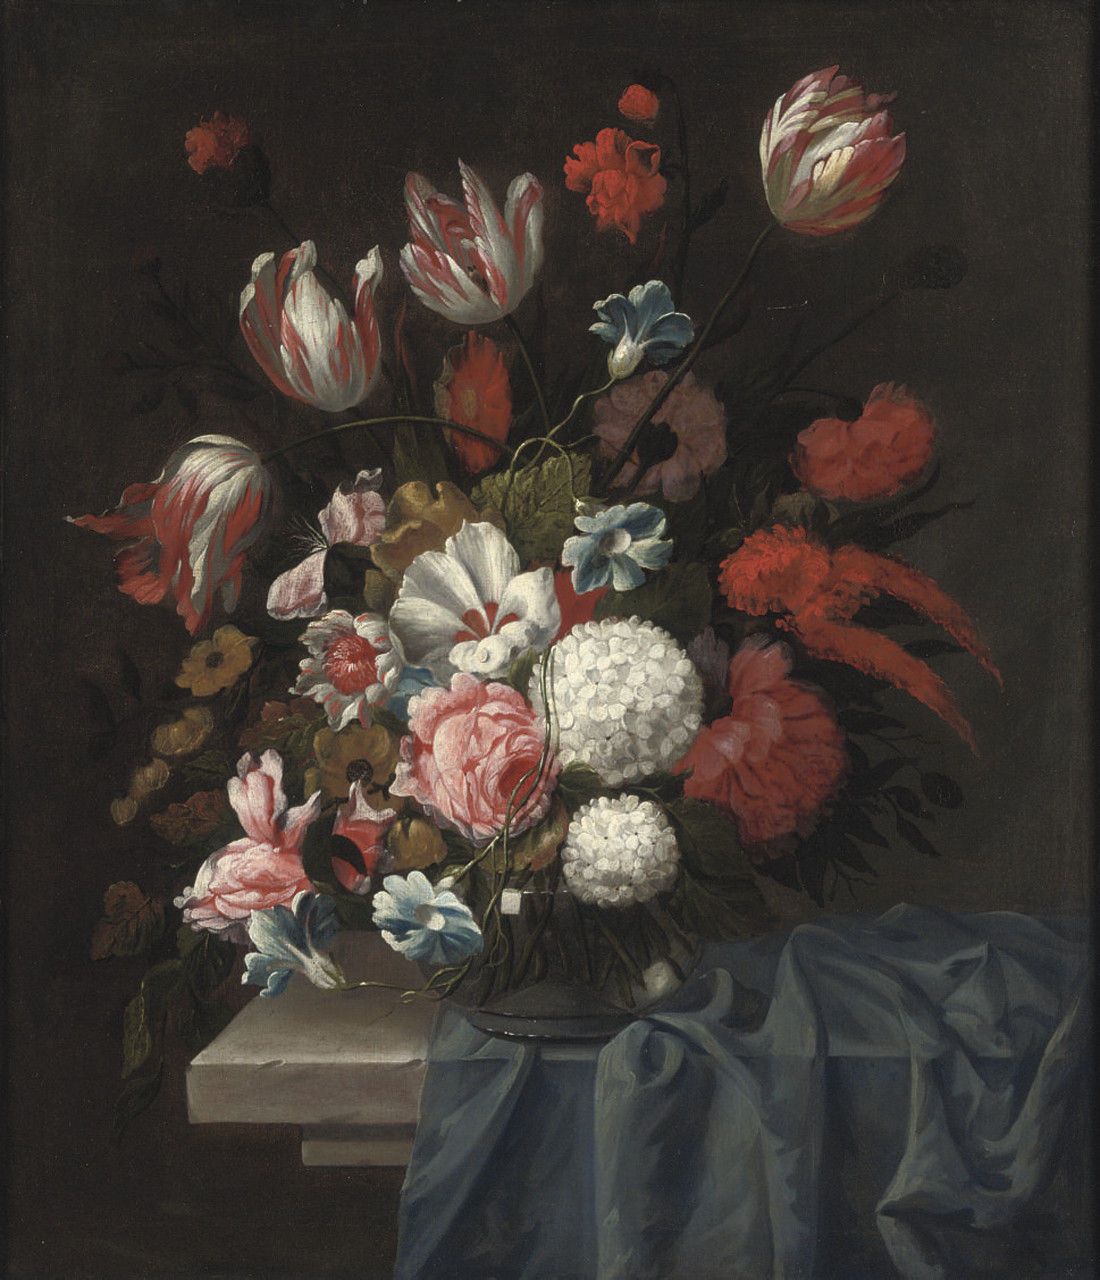 Tulips, roses, poppies and other flowers in a glass vase on a stone table